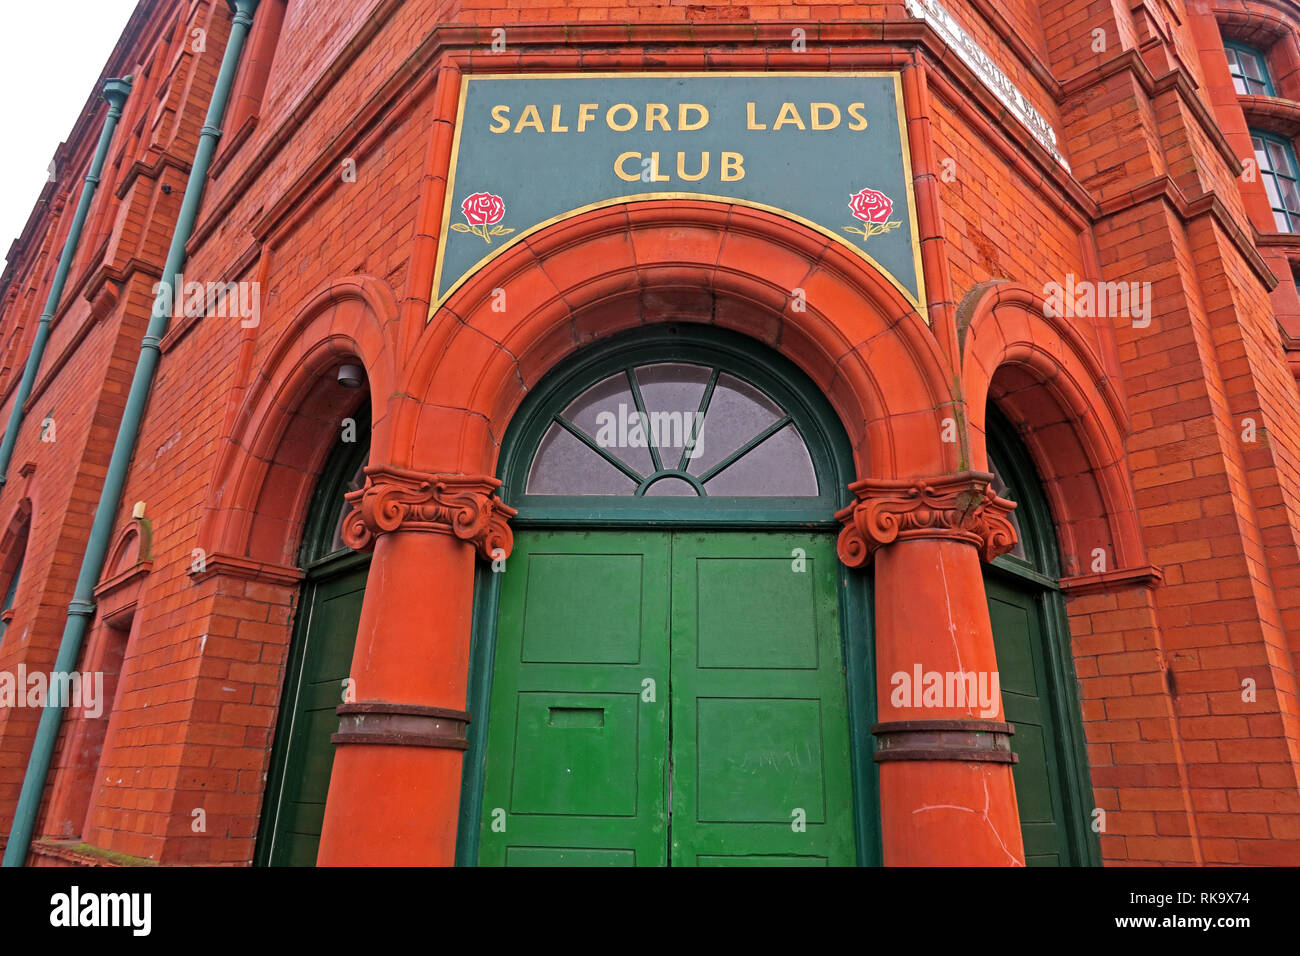 Salford Lads Club doorway, as featured in The Smiths album, The Queen Is Dead, Saint Ignatius Walk, Salford, Lancashire, North West England, UK,M5 3RX - Stock Image